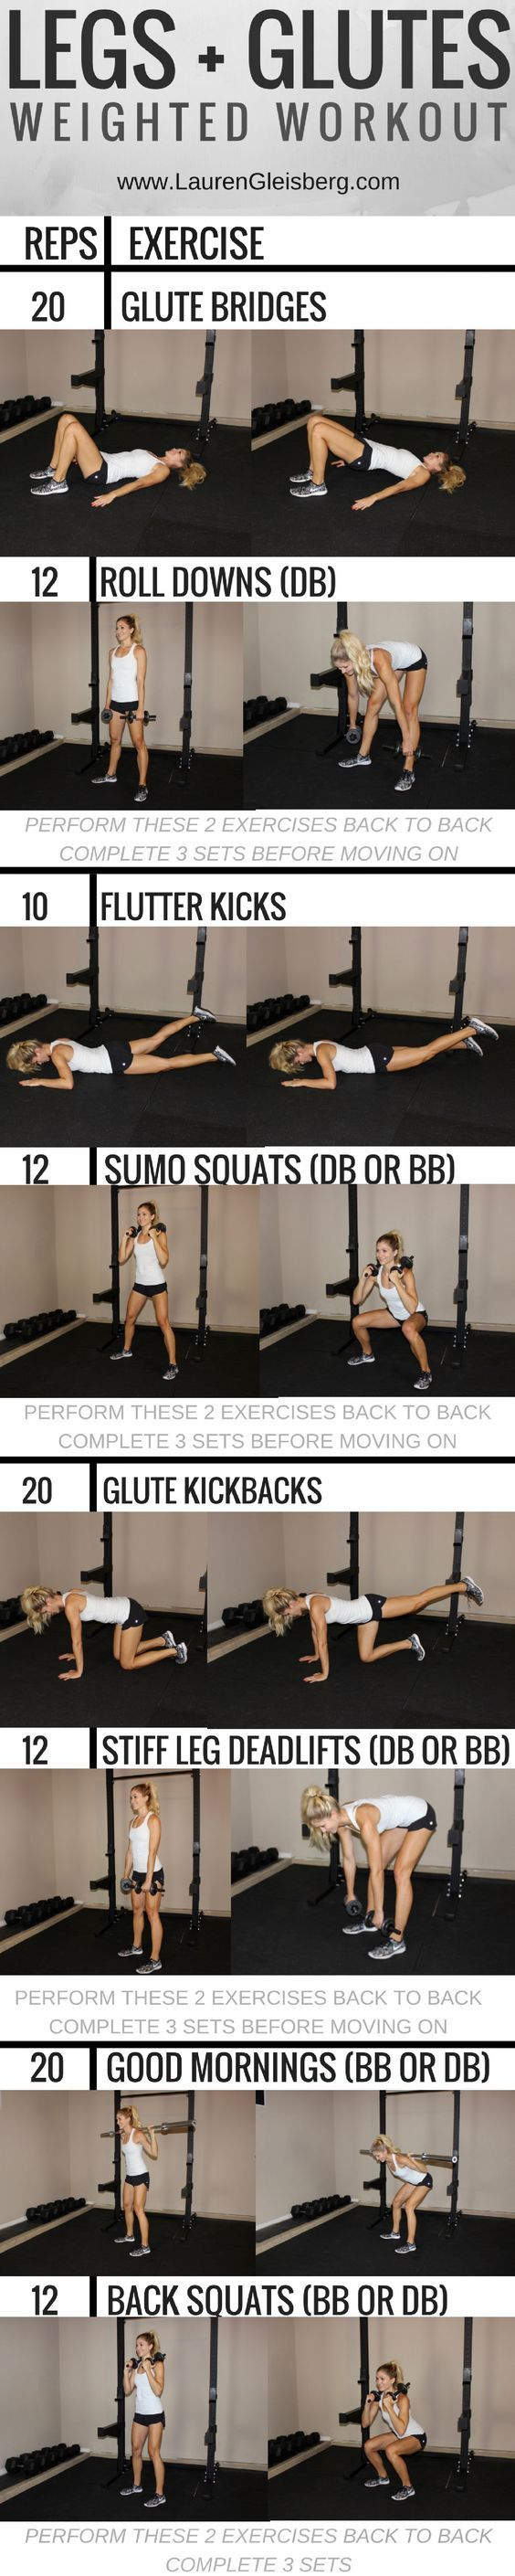 Legs  Glutes | Butt Workout - click for the full fitness program